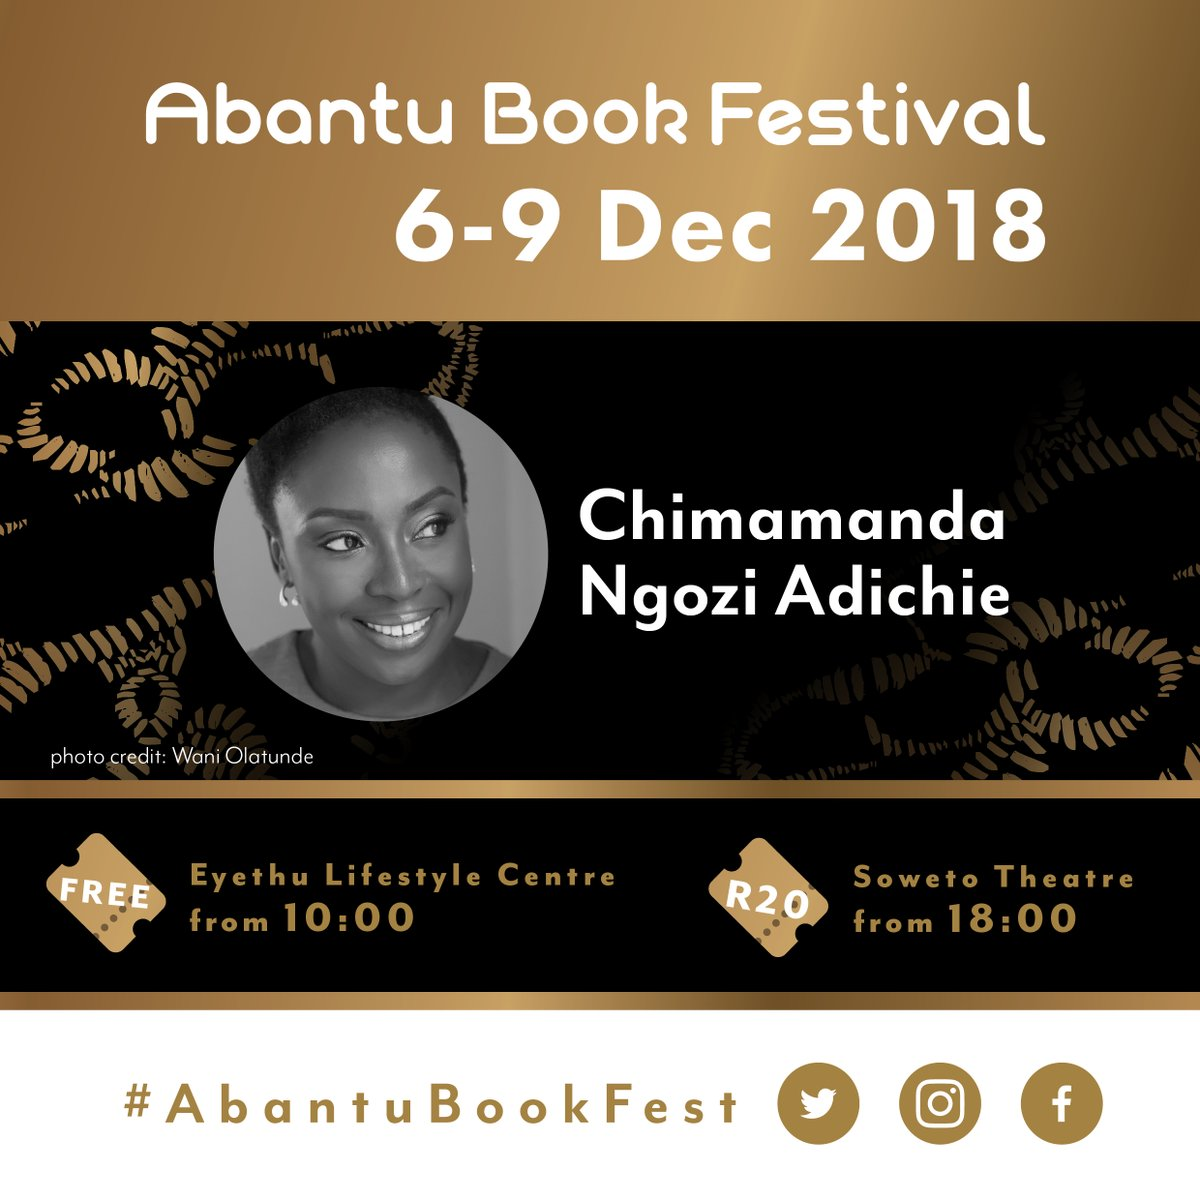 The Annual Pilgrimage For Black Writers And Readers, Abantu Book Festival Is Back: Chimamanda Ngozi Adichie Set To Grace This Year's Edition